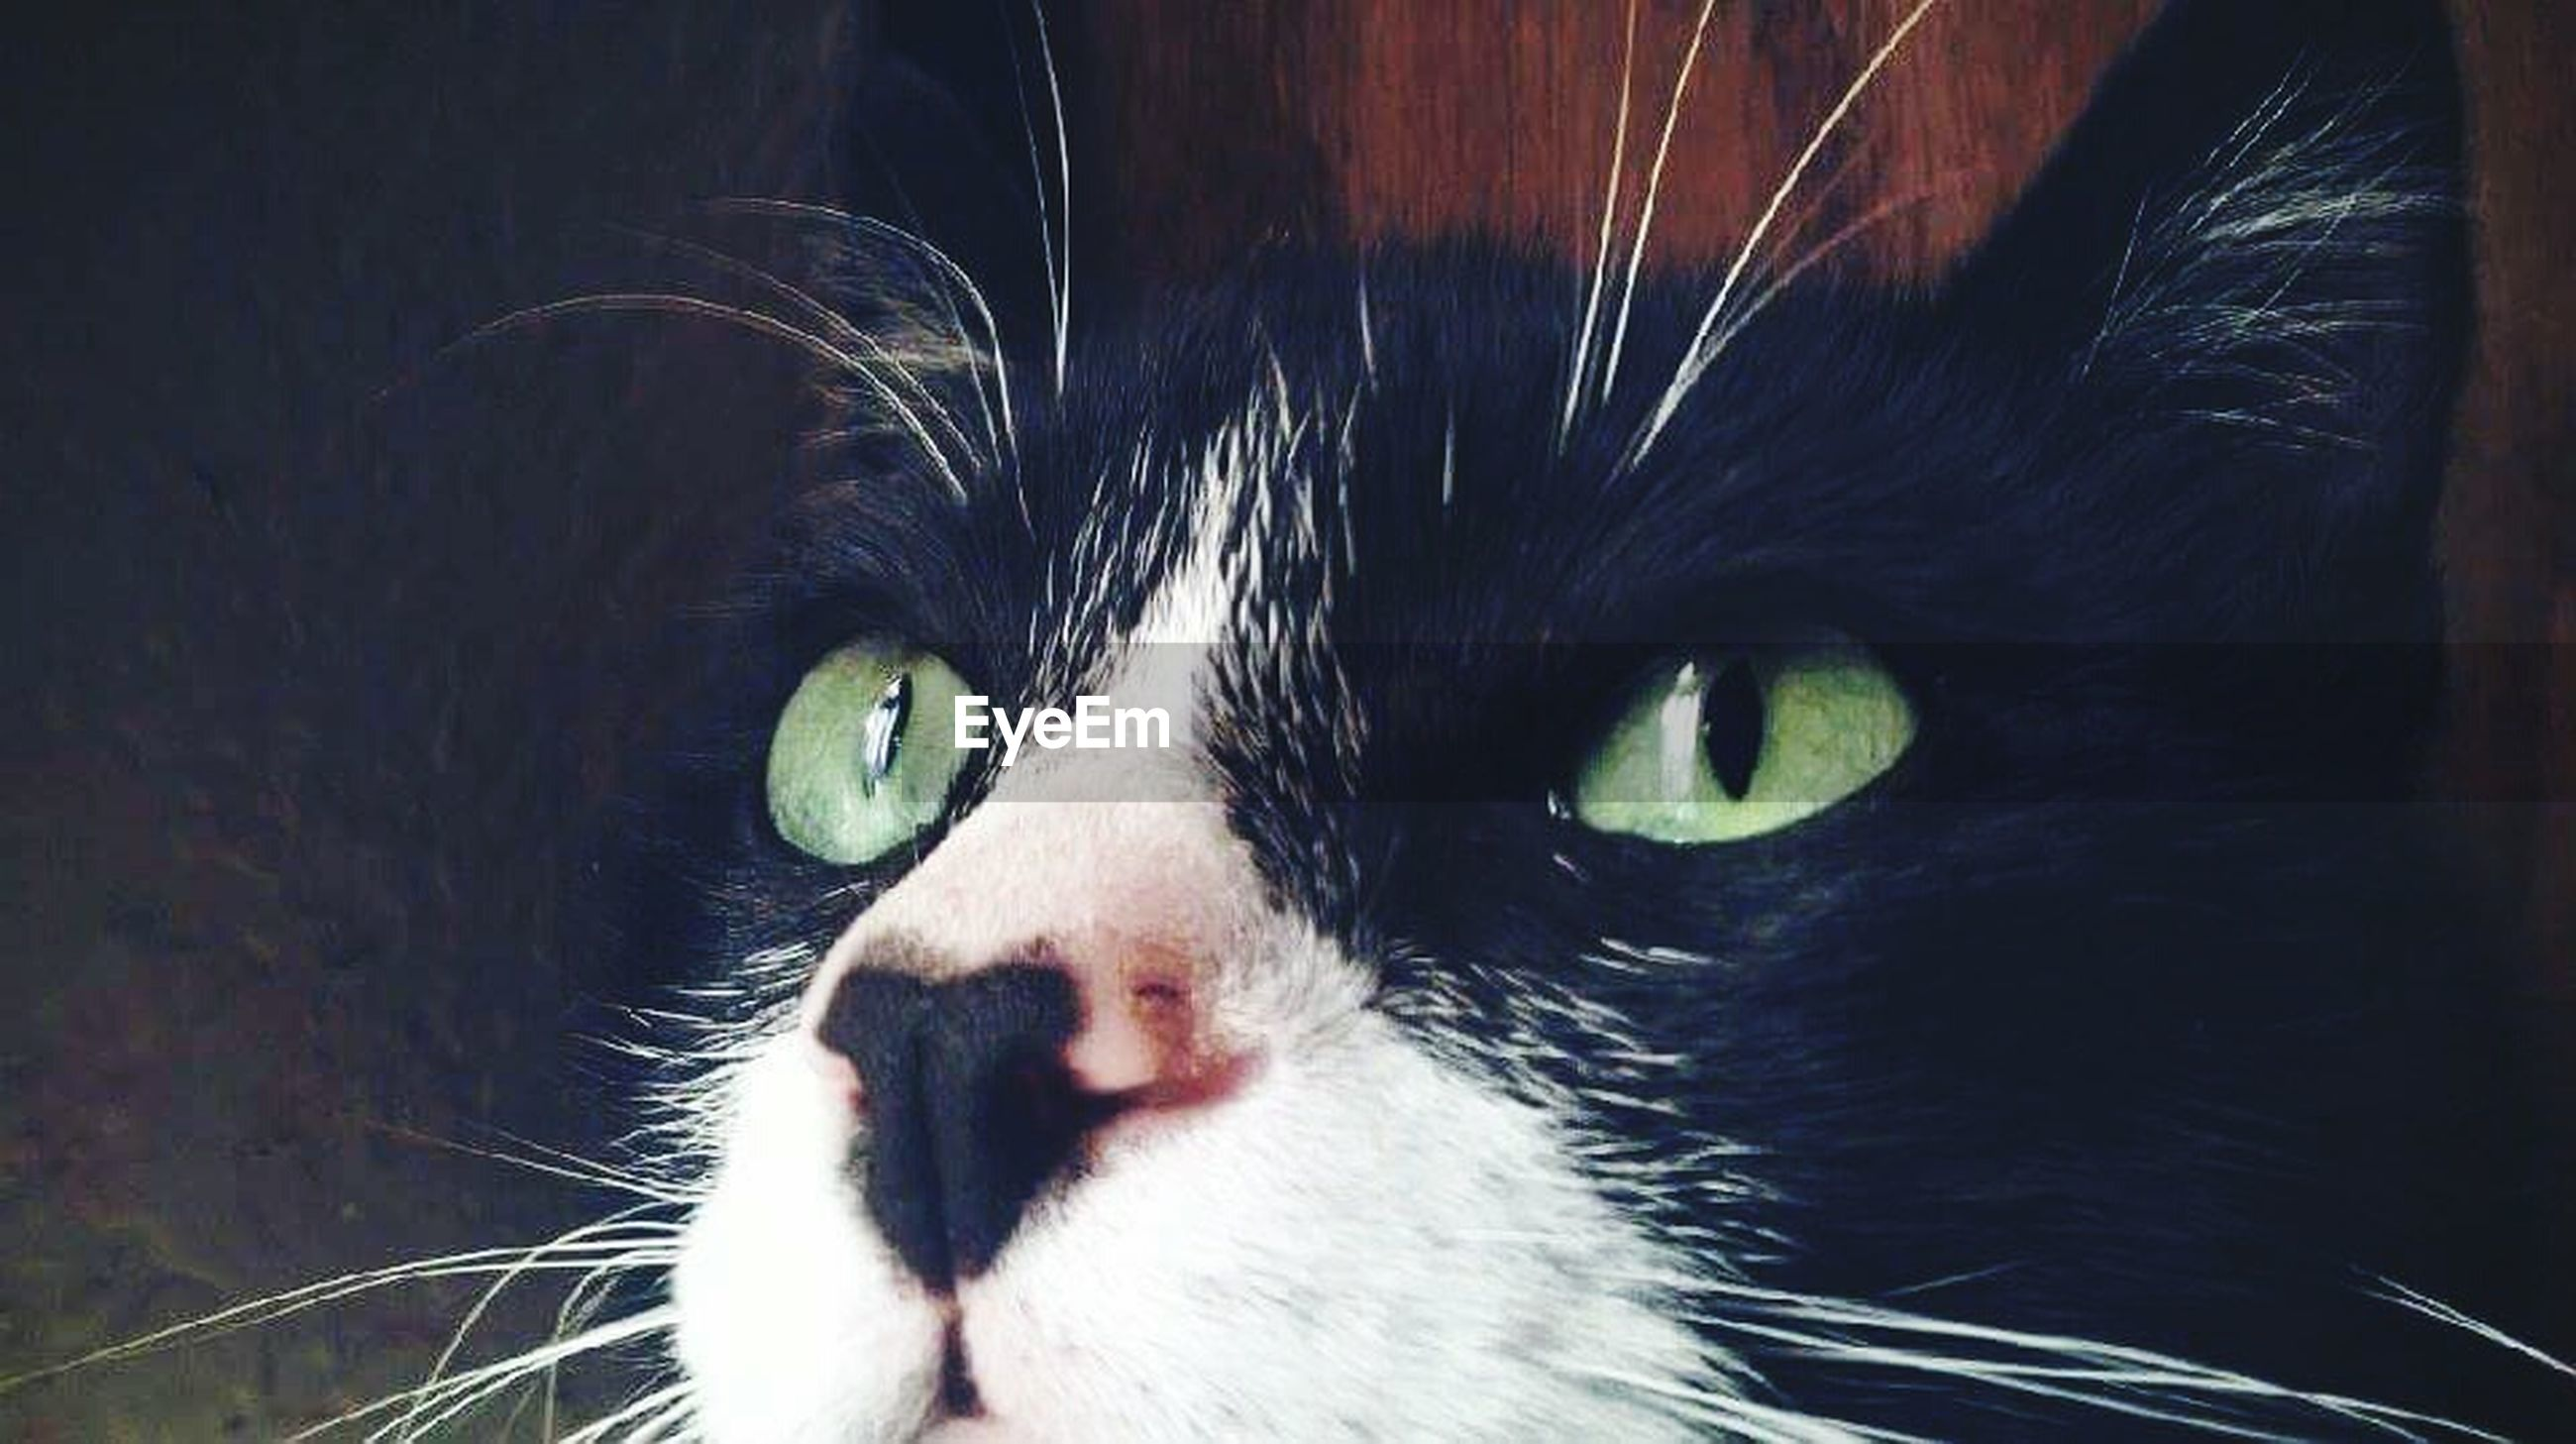 one animal, animal themes, pets, domestic animals, domestic cat, mammal, animal eye, animal head, close-up, animal body part, cat, whisker, portrait, looking at camera, feline, animal hair, staring, part of, indoors, zoology